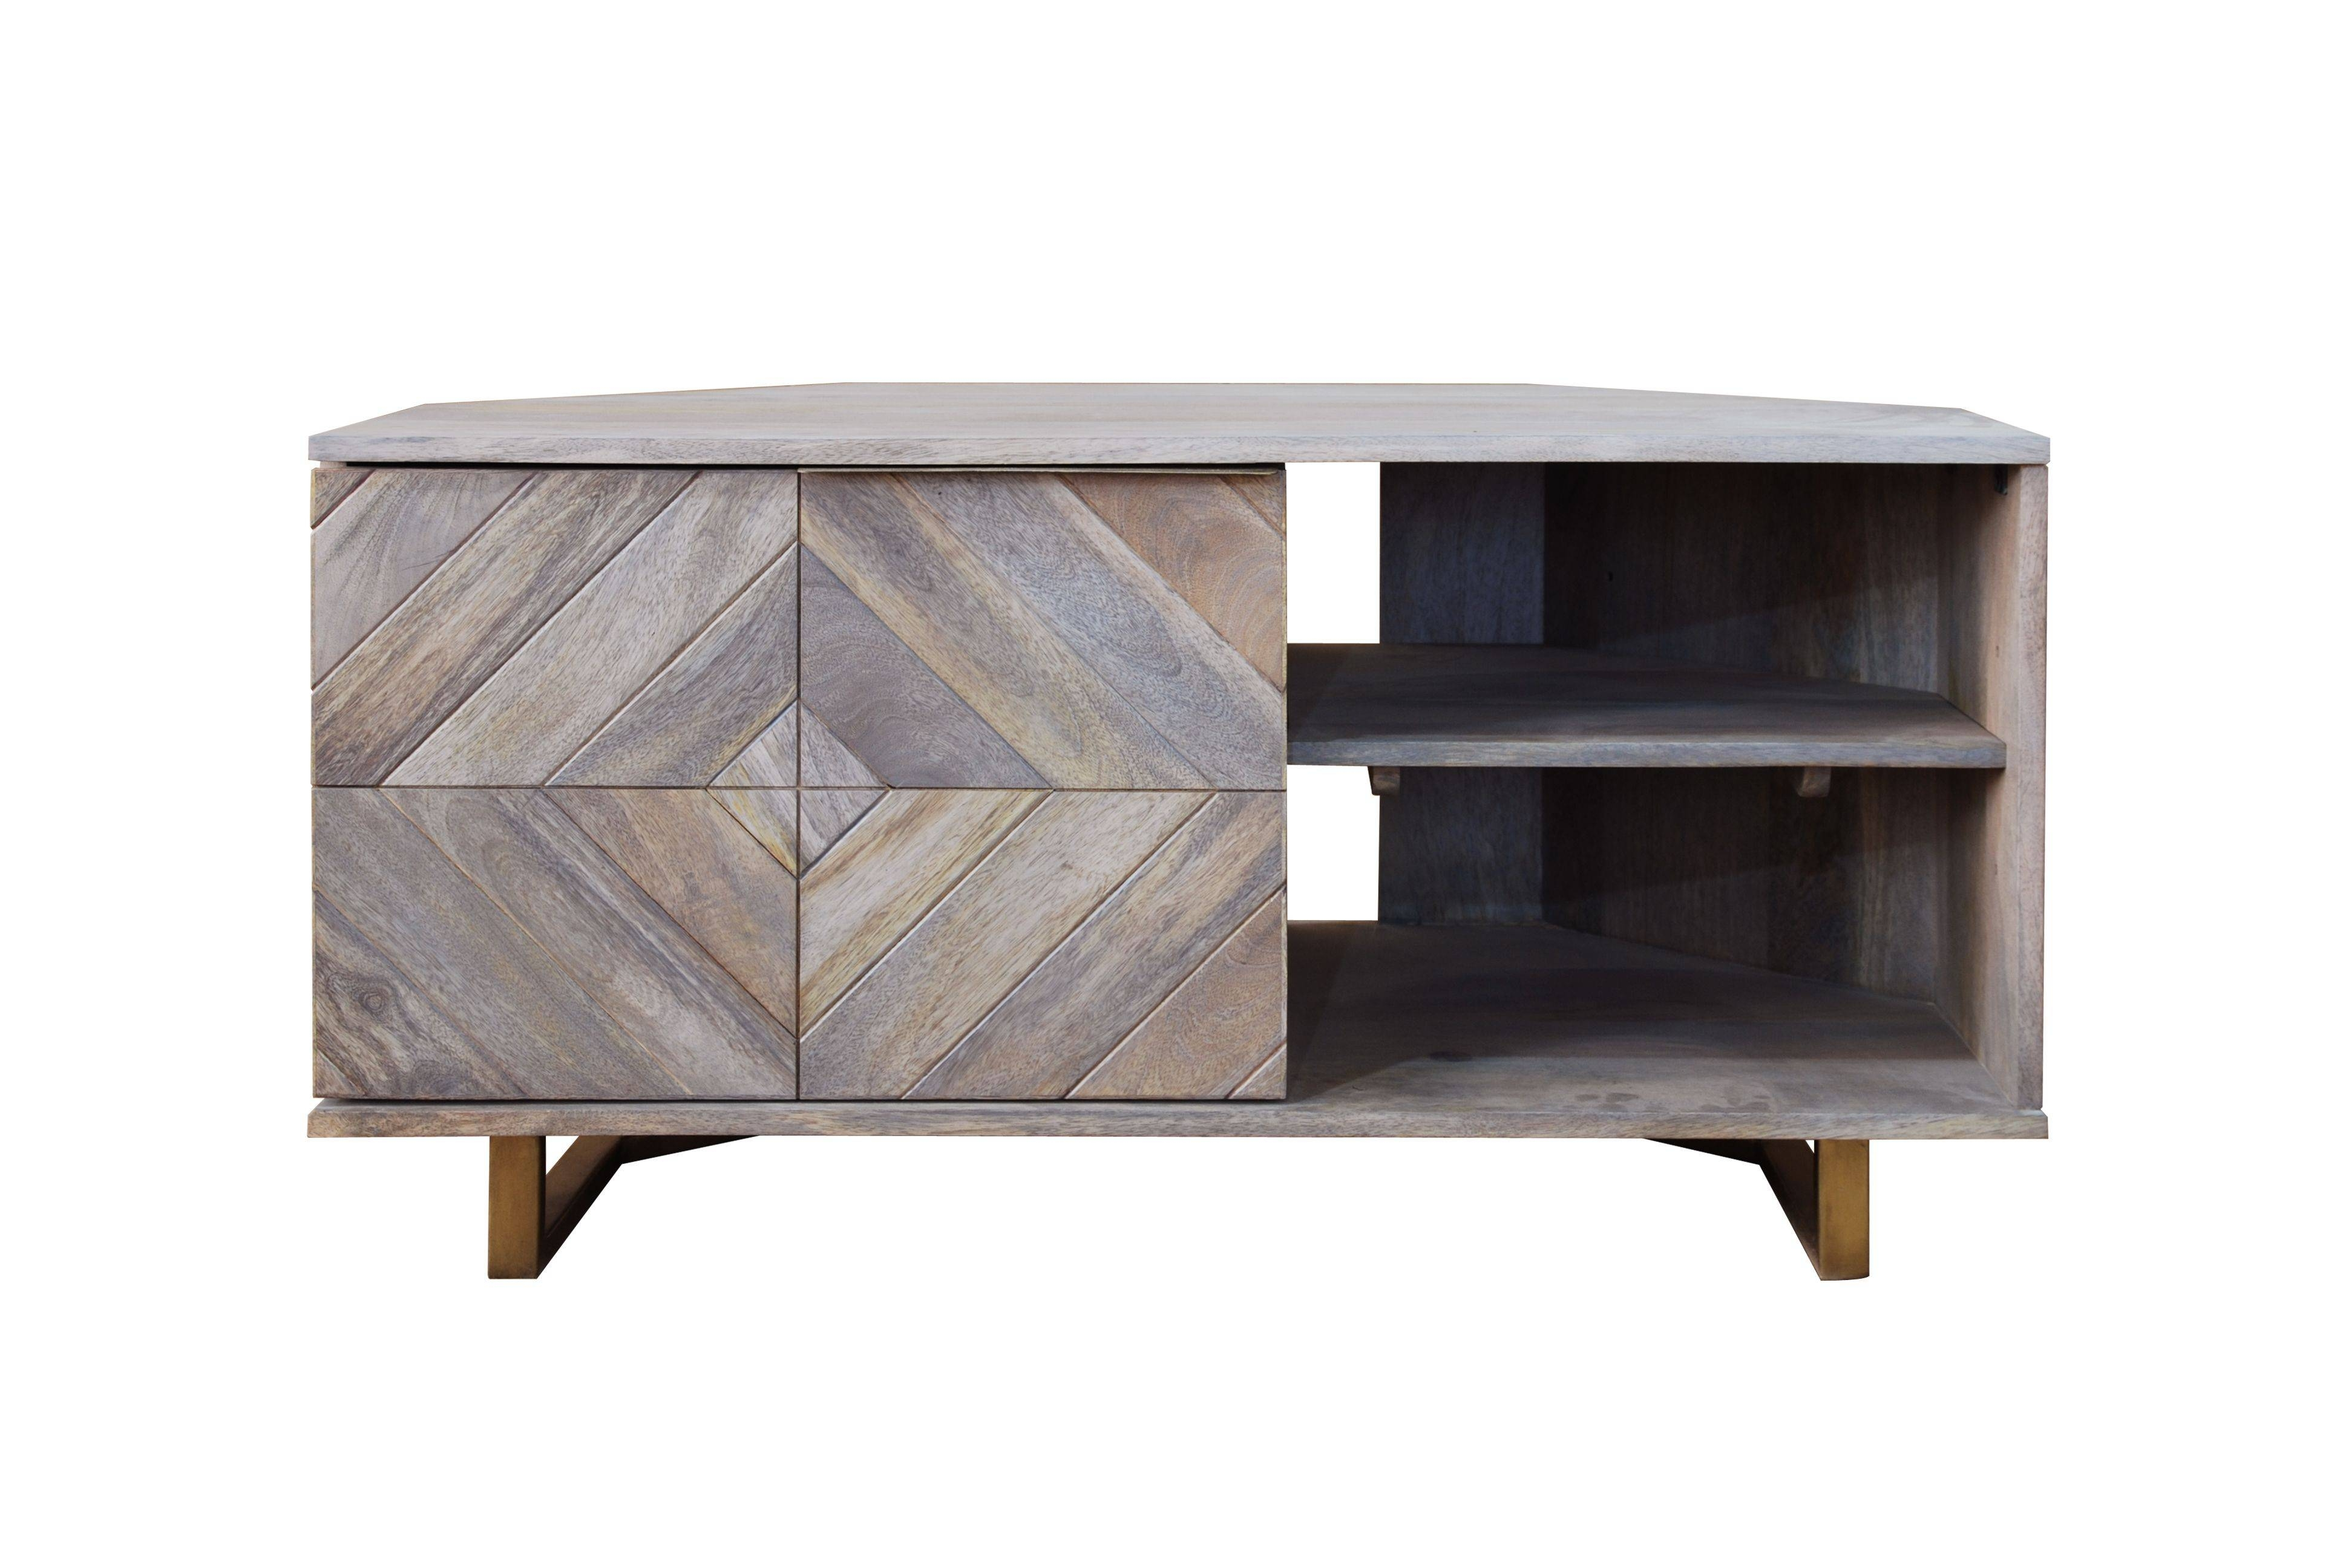 Tv Units - Our Pick Of The Best | Ideal Home intended for Grey Corner Tv Stands (Image 14 of 15)